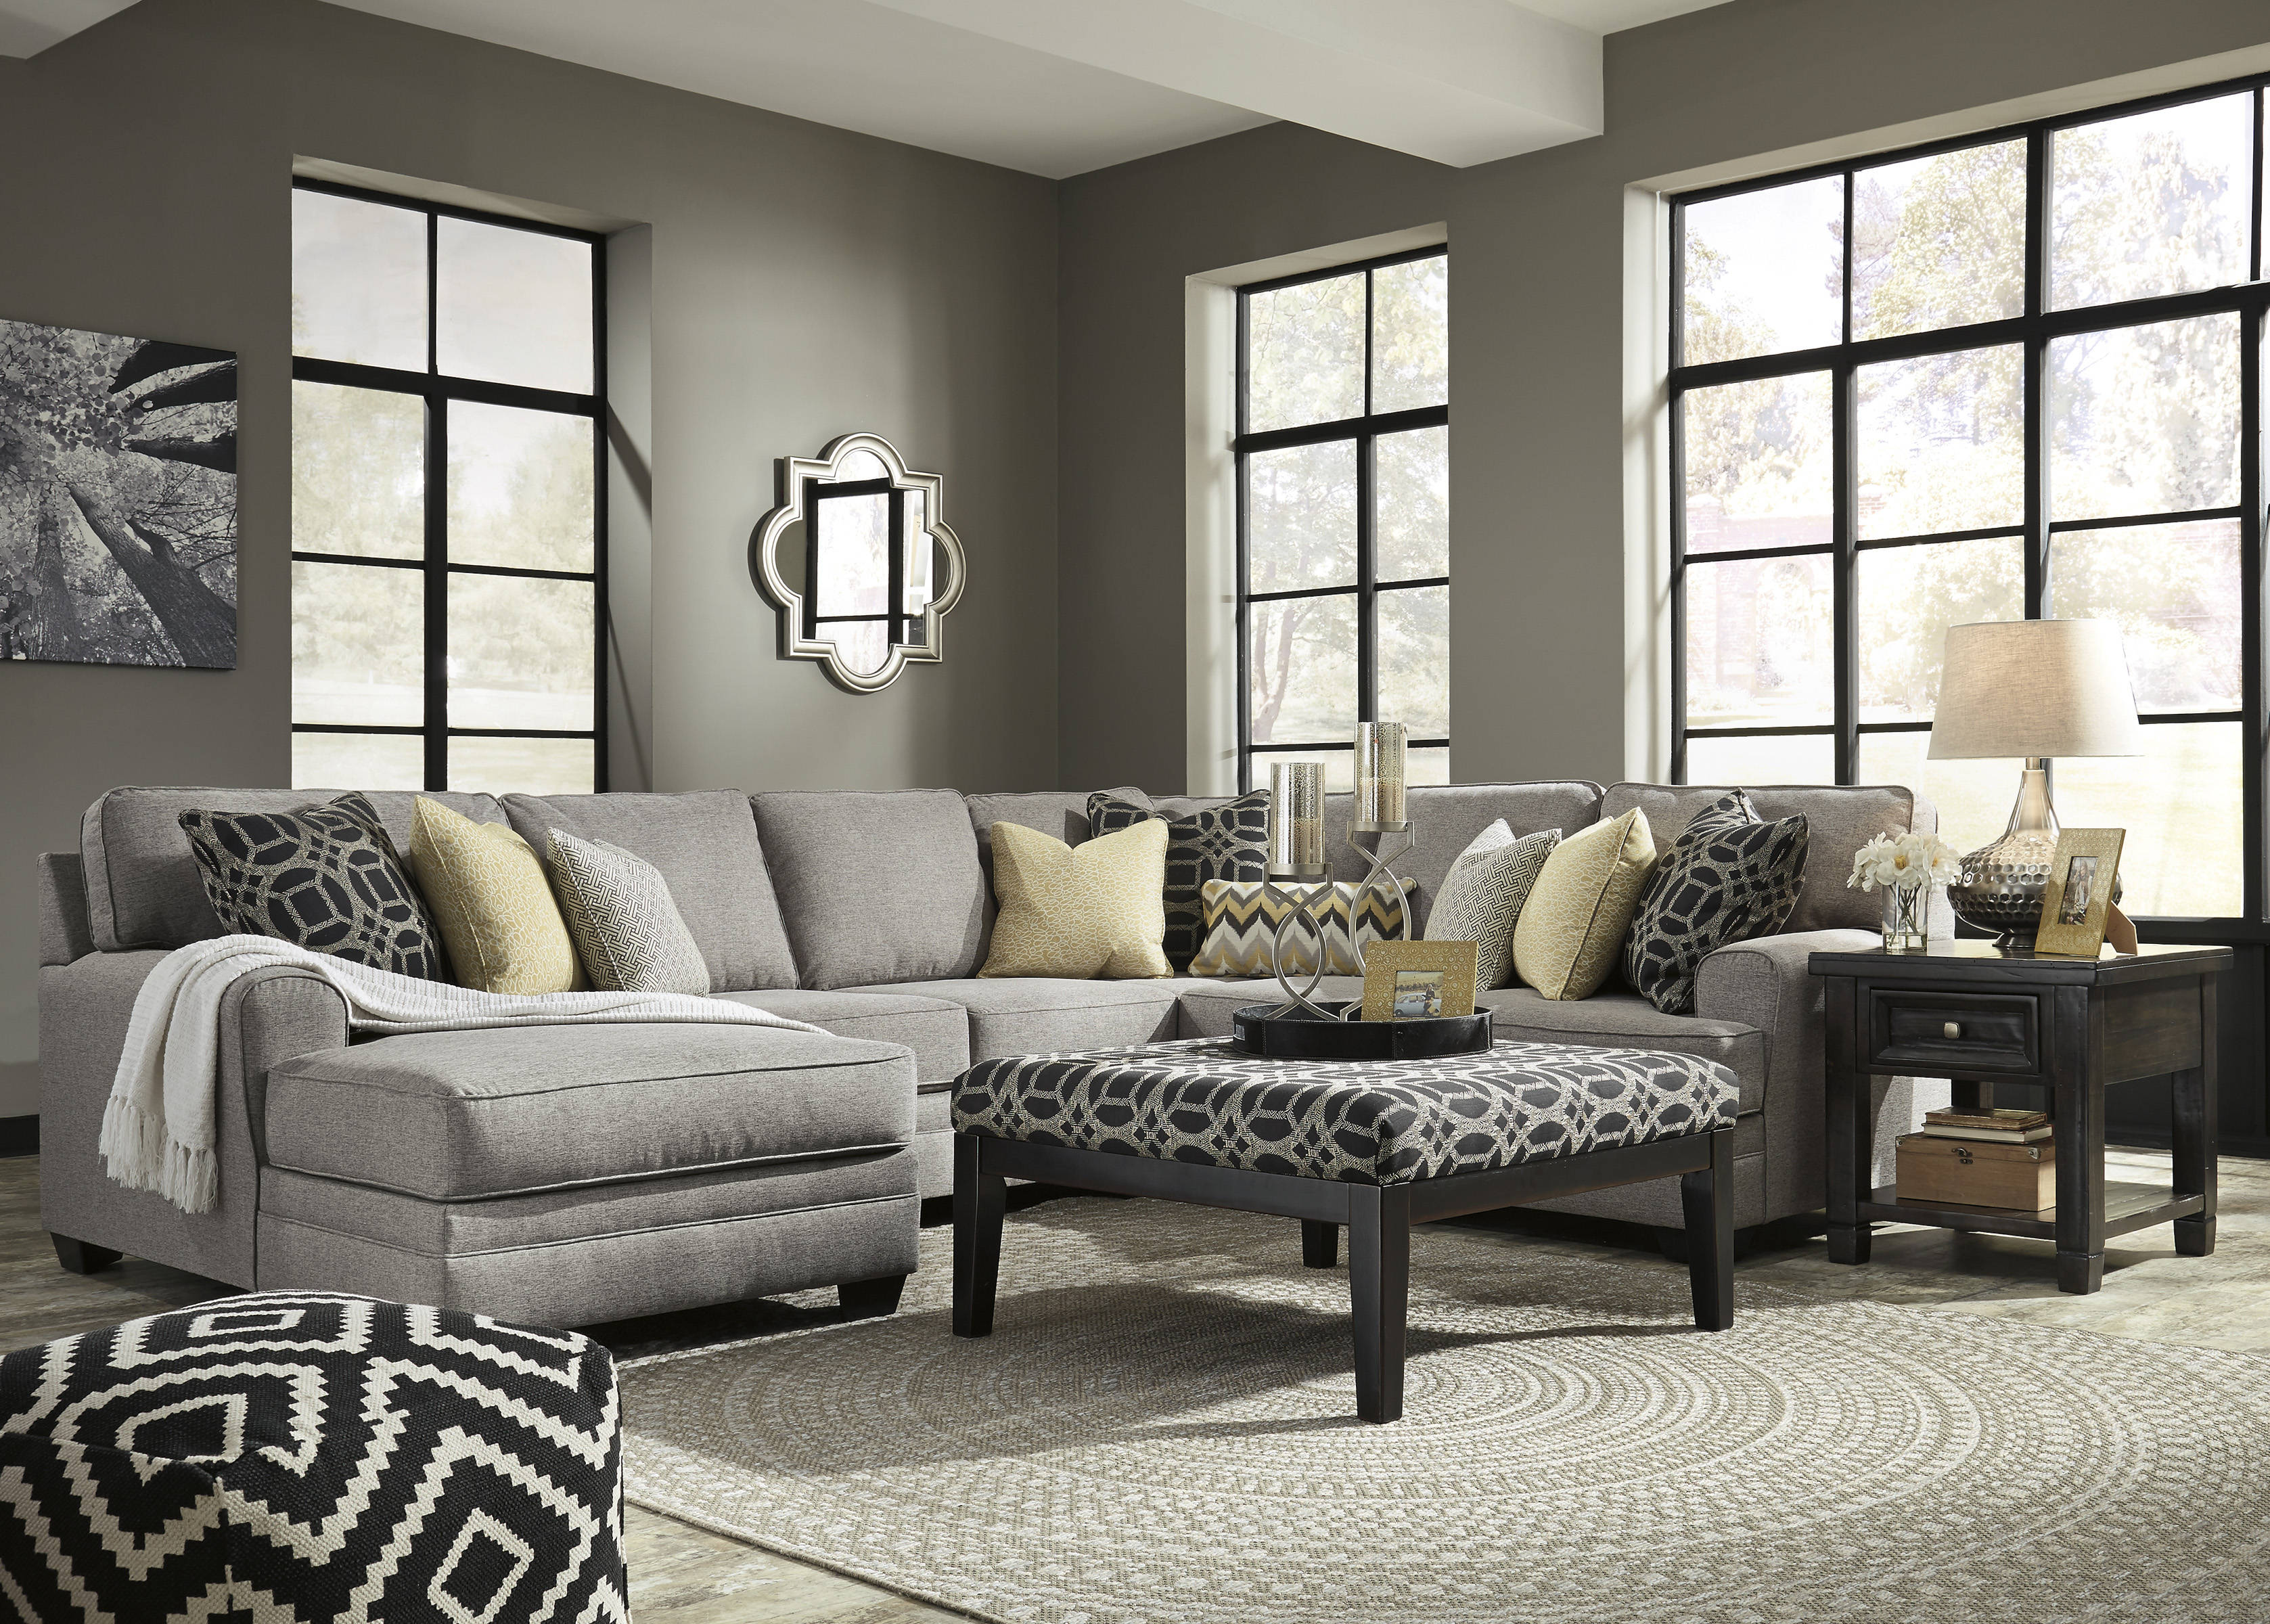 Ashley furniture cresson laf chaise and ottoman sectionals for Ashley sectional sofa with ottoman